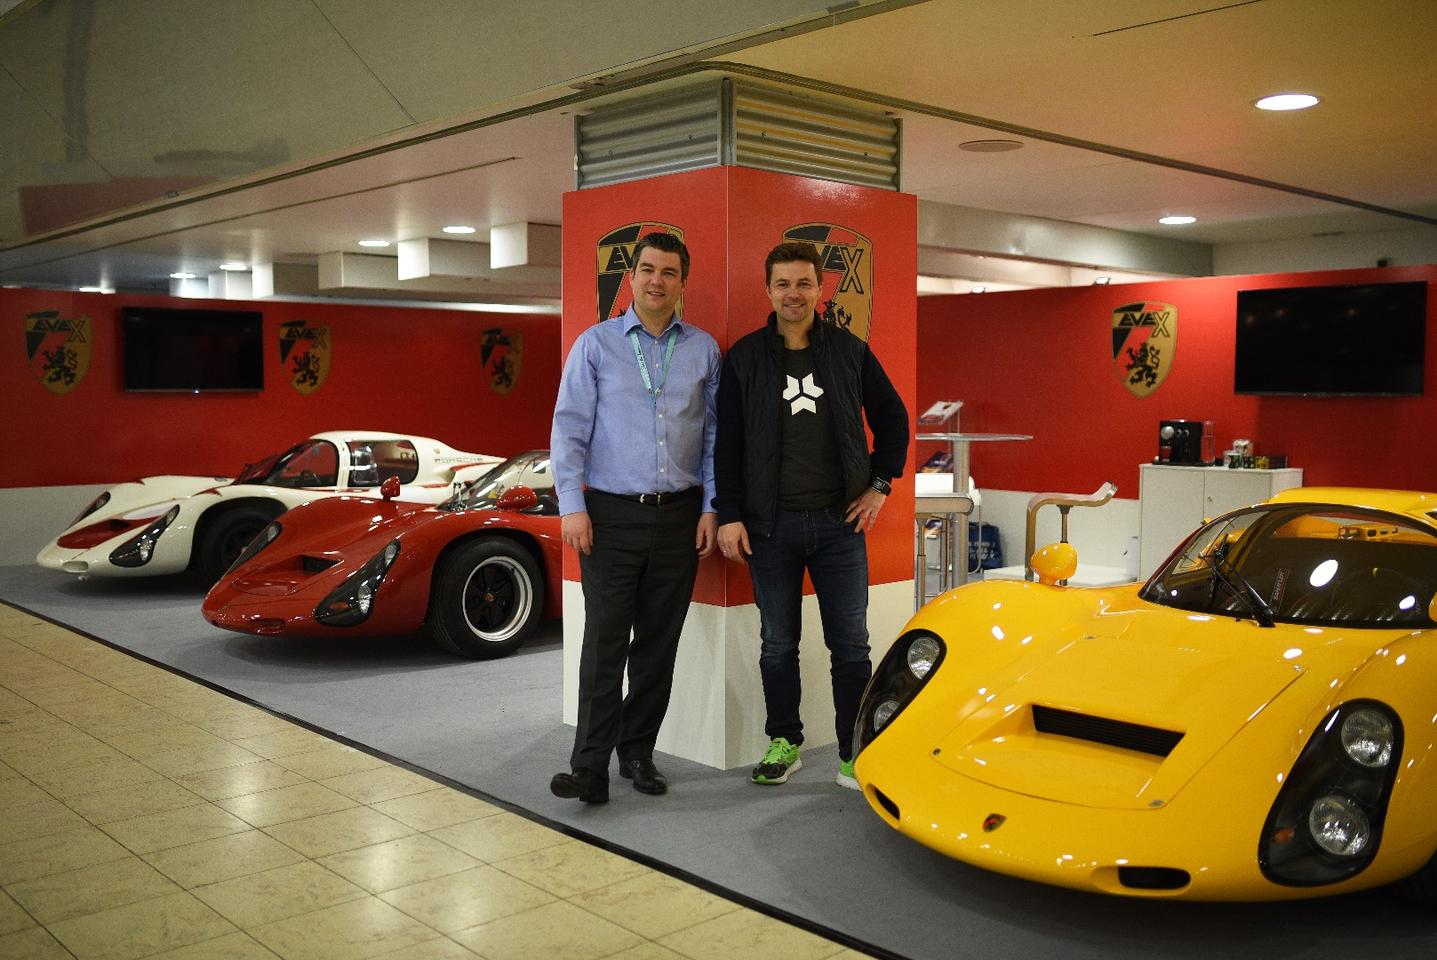 Kreisel and Evex showed a 910e, Evex 910 and original Porsche 910 at the recent Techno-Classica Essen show